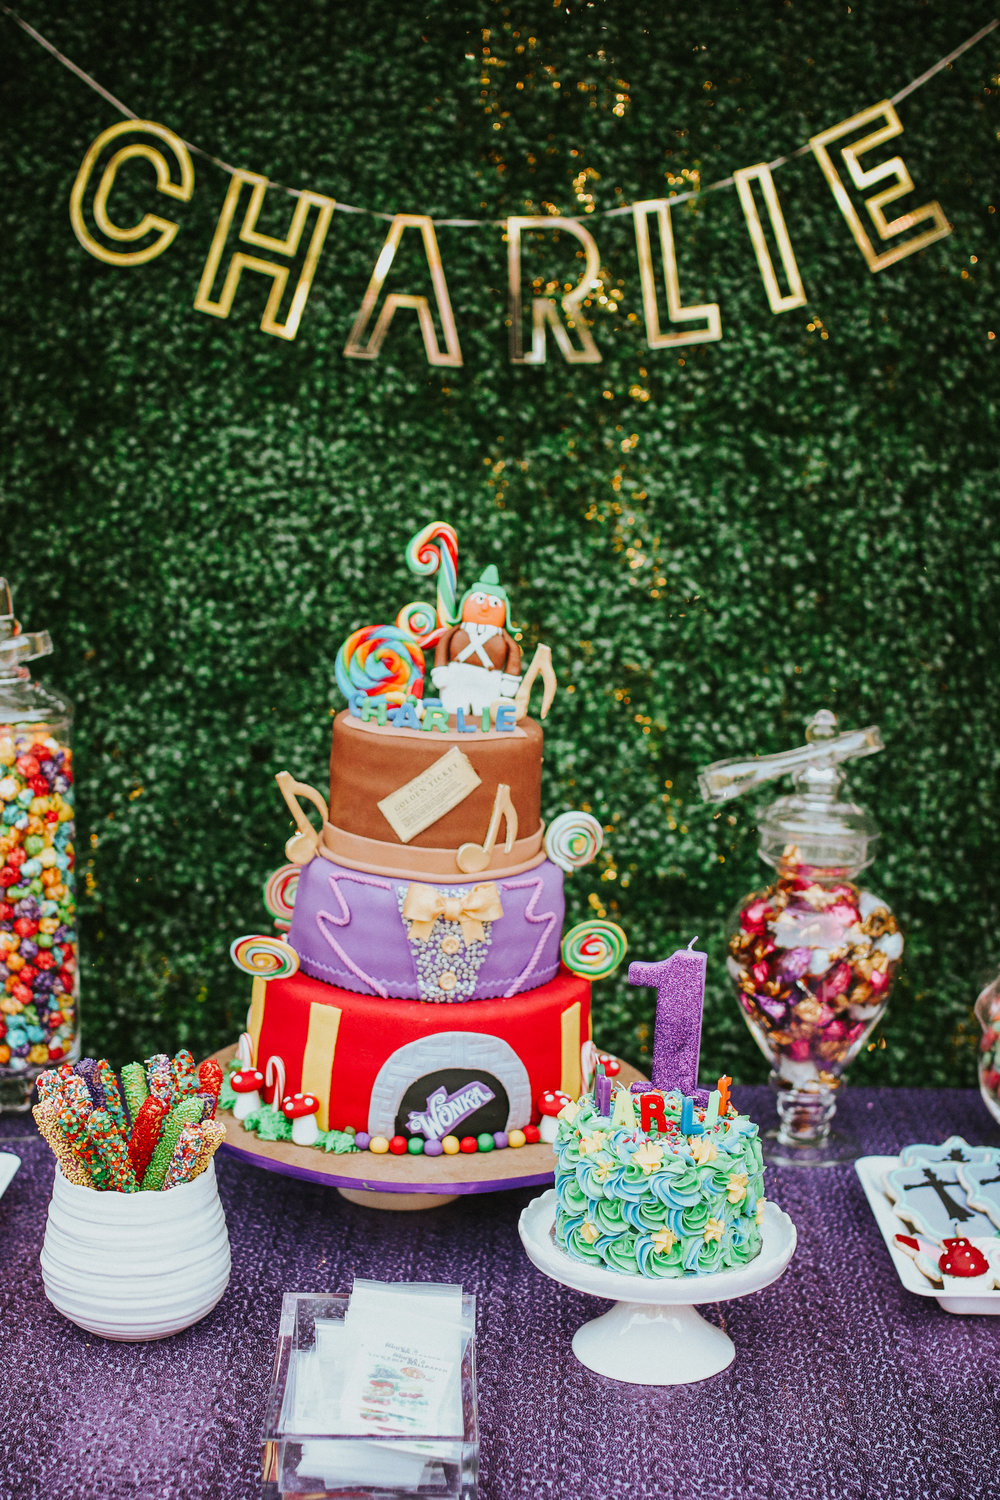 Willy Wonka Themed Birthday Party - Scarlet Plan & Design Atlanta Party Event Planners & Designers (299).jpg